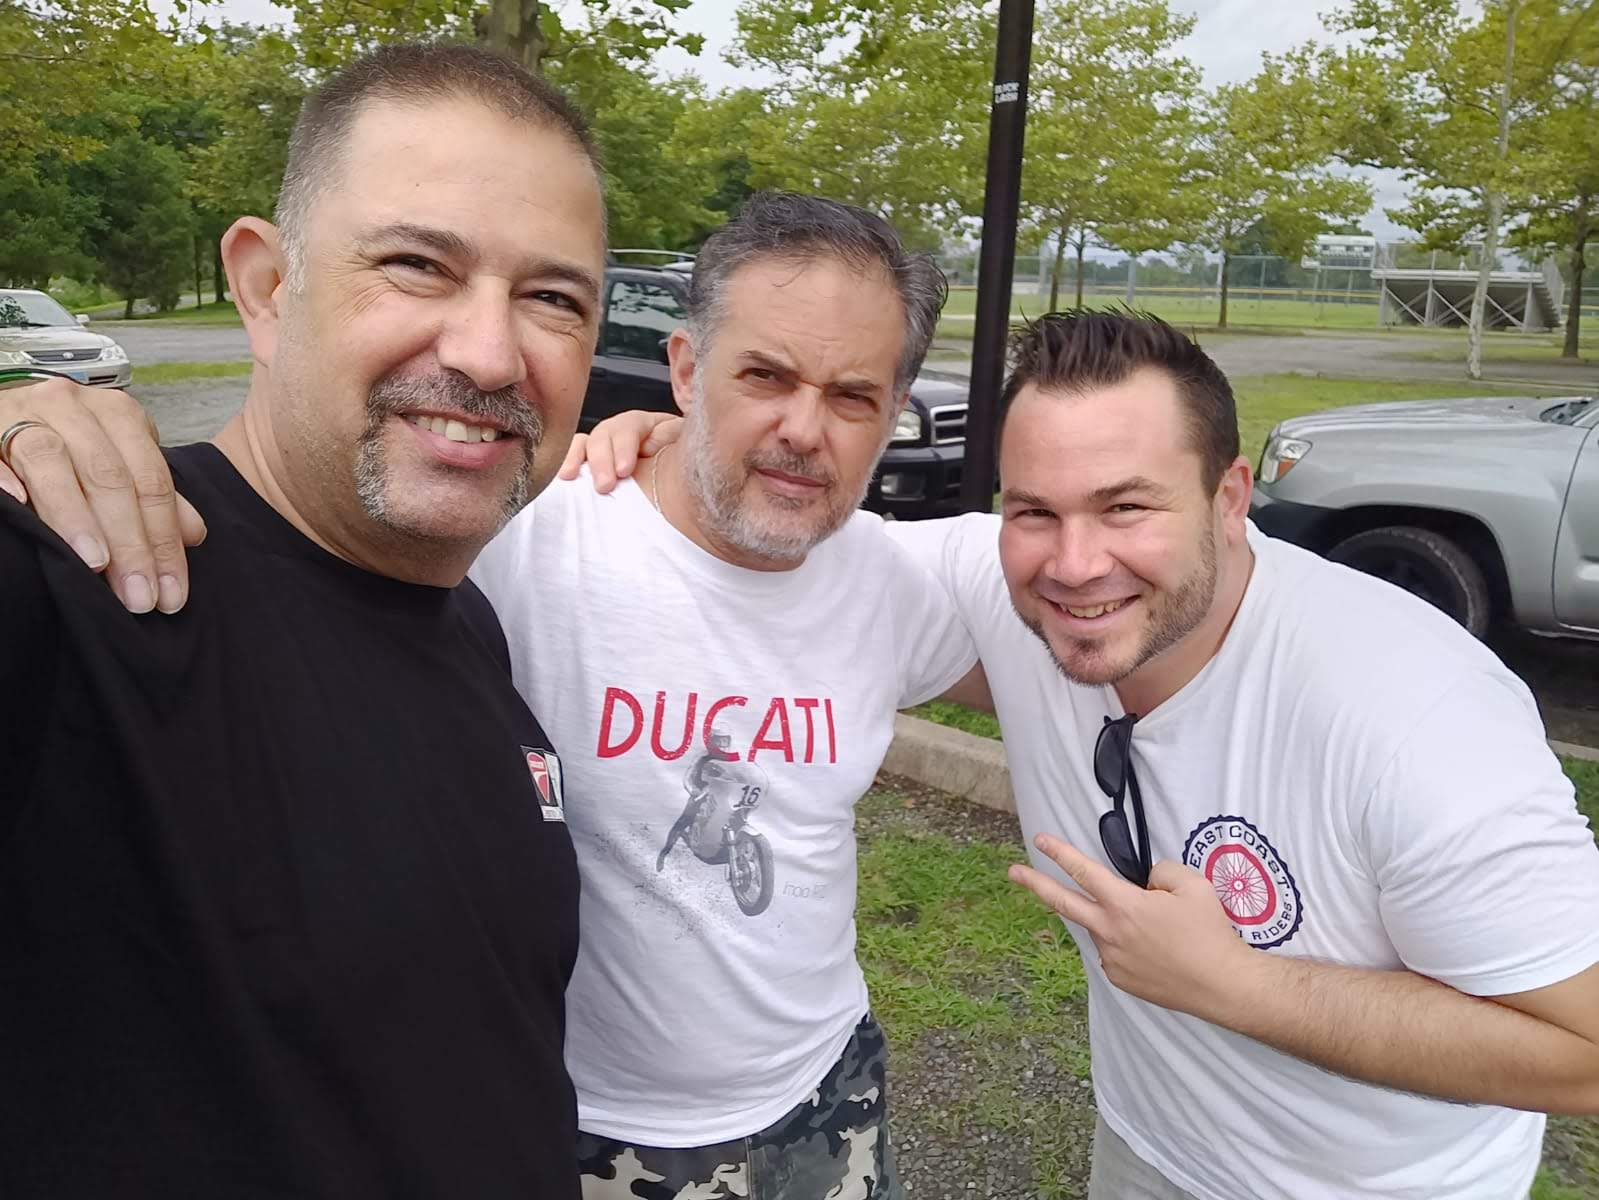 DOC Presidents Daniel Petri of Desmo Owners Club Israel Sandro DiCicco of Desmo Ducati, and Tigh Loughhead of Gotham Ducati #WPMNeverEnds